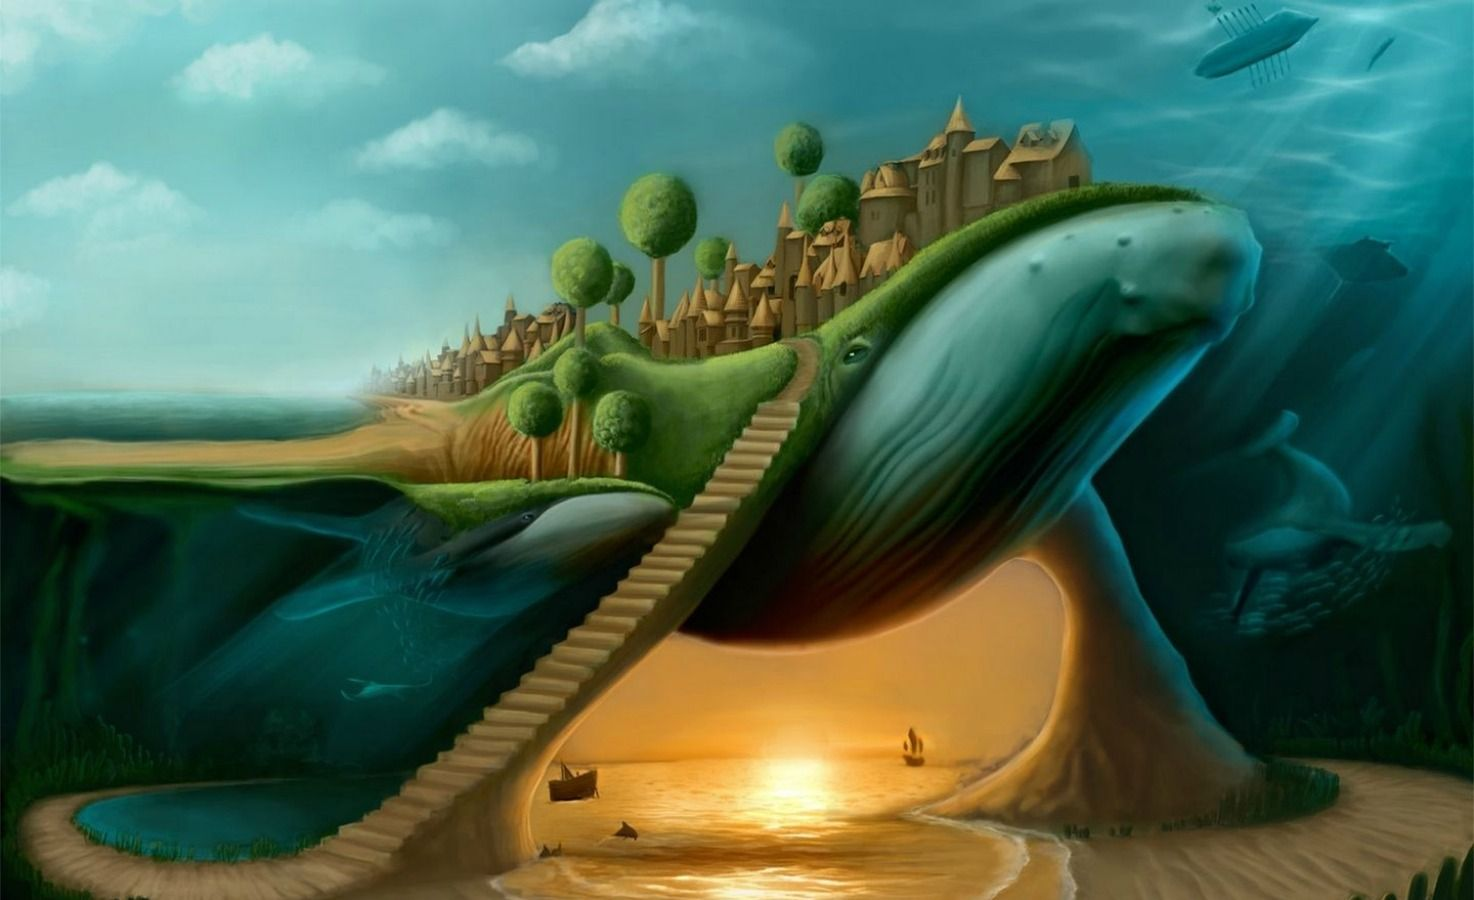 Wizard Of Oz Computer Wallpaper Surreal Art Whale Art Whale